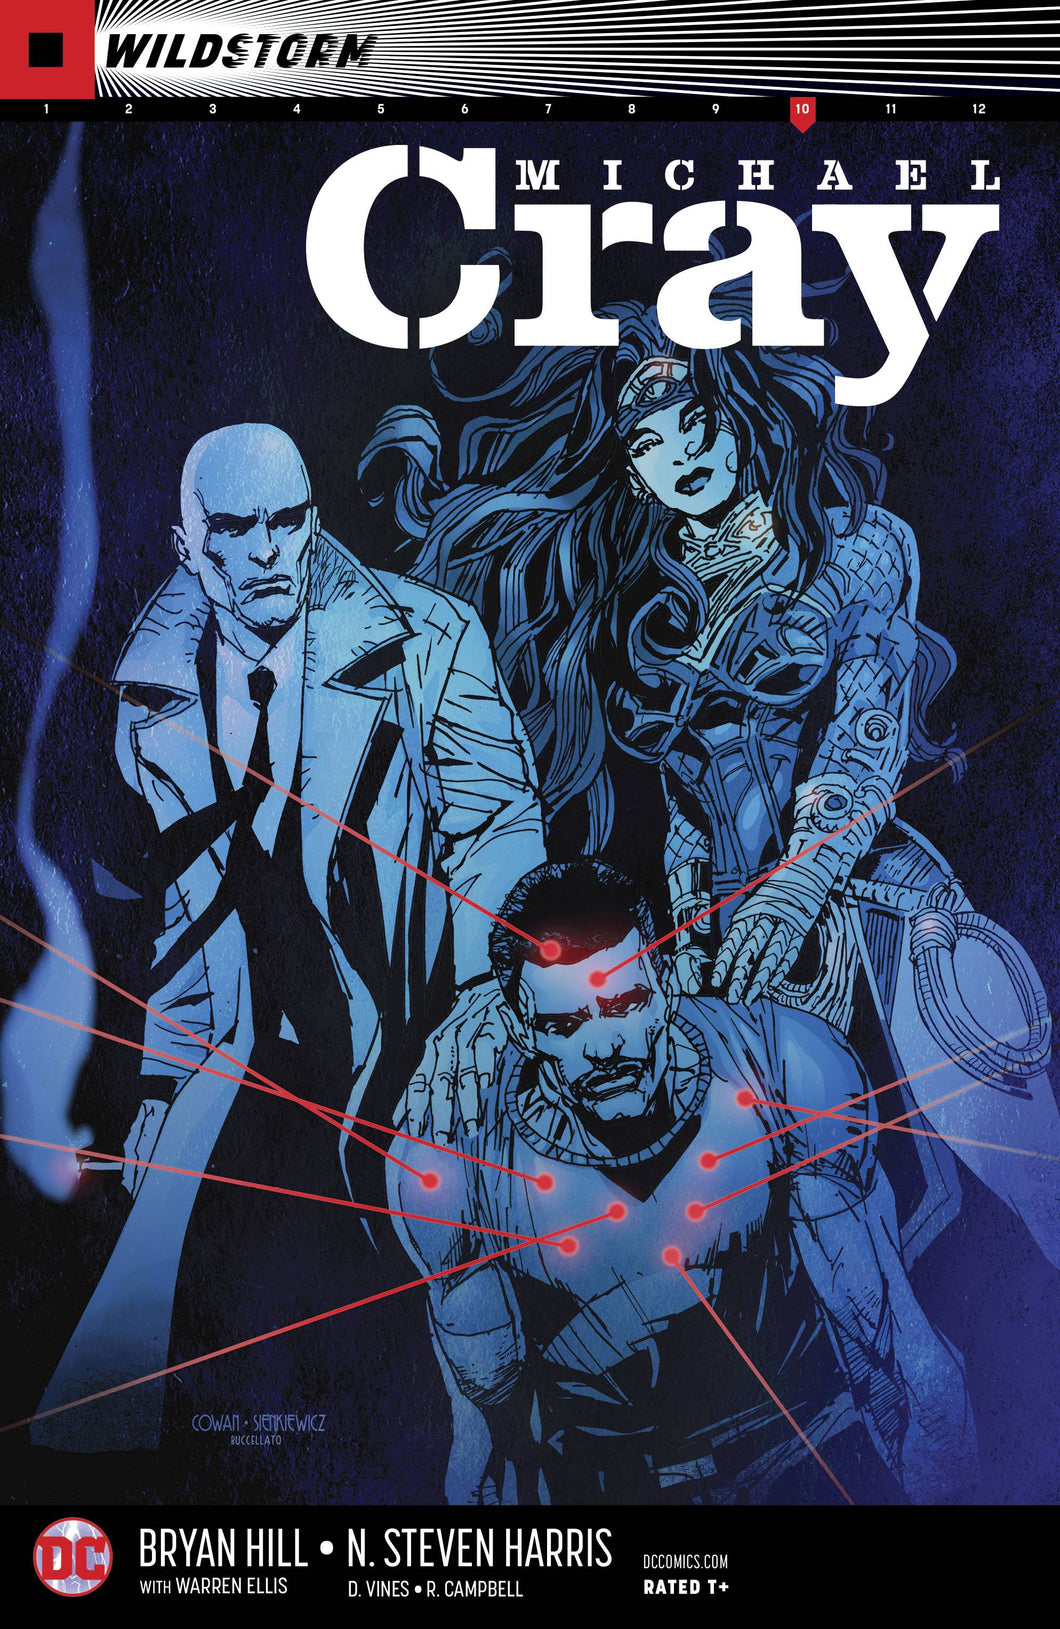 WILDSTORM MICHAEL CRAY #10 (08/08/2018)